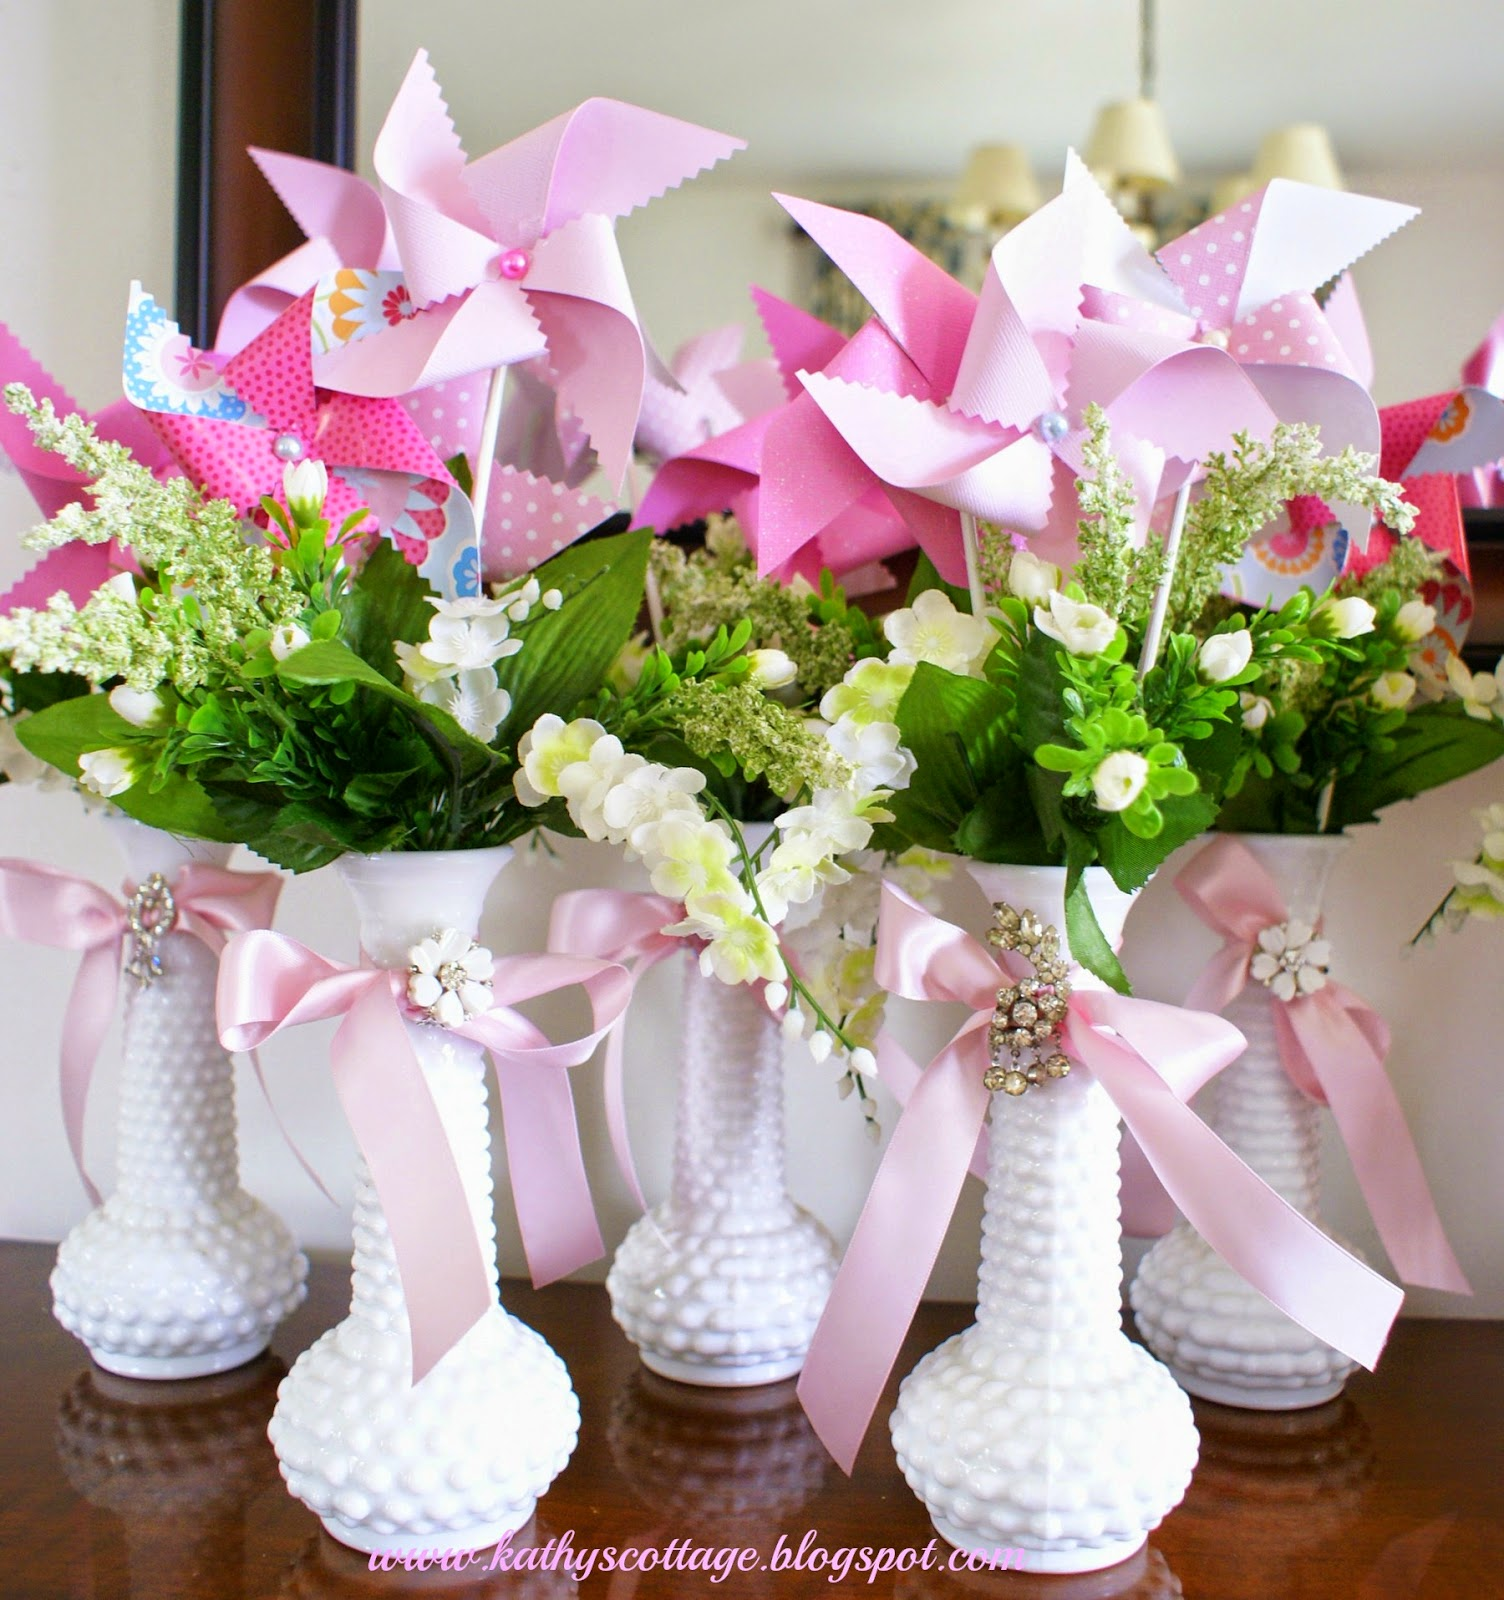 Inexpensive Wedding Centerpiece Ideas: Kathys Cottage: Budget Wedding And Bridal Shower Centerpieces